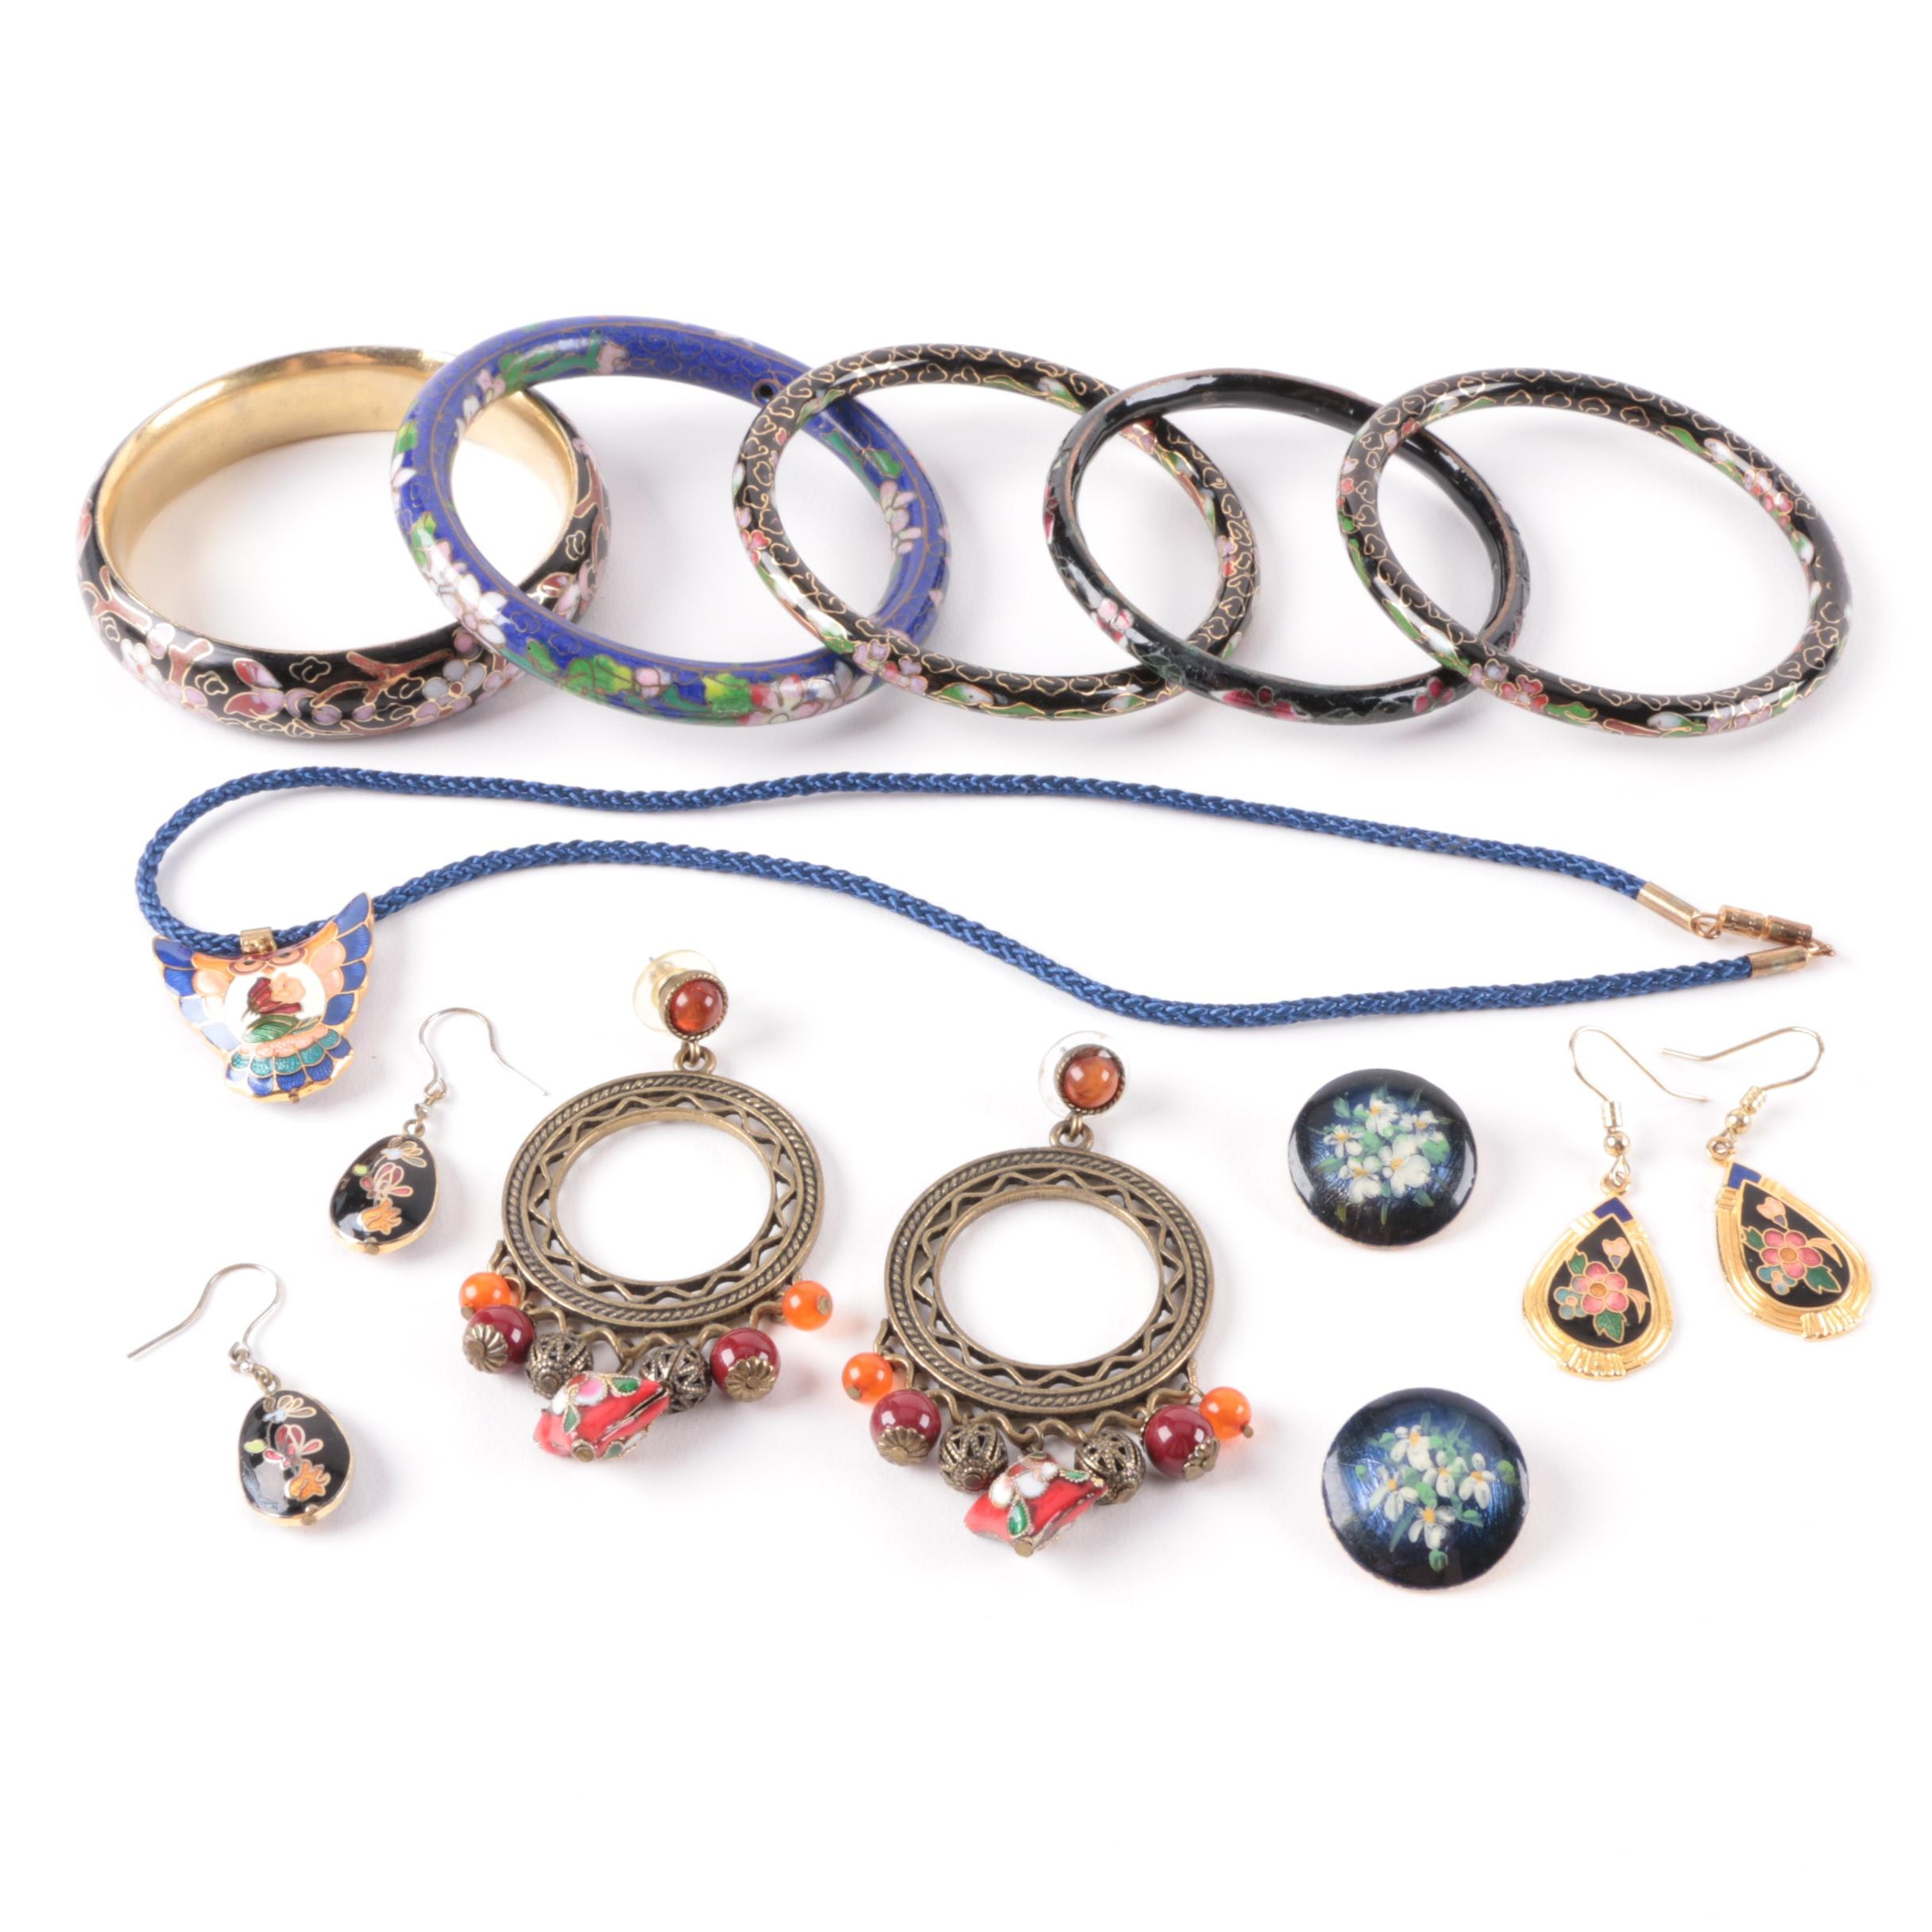 Cloissoné Enamel Bracelets with Enamel Necklace and Earrings